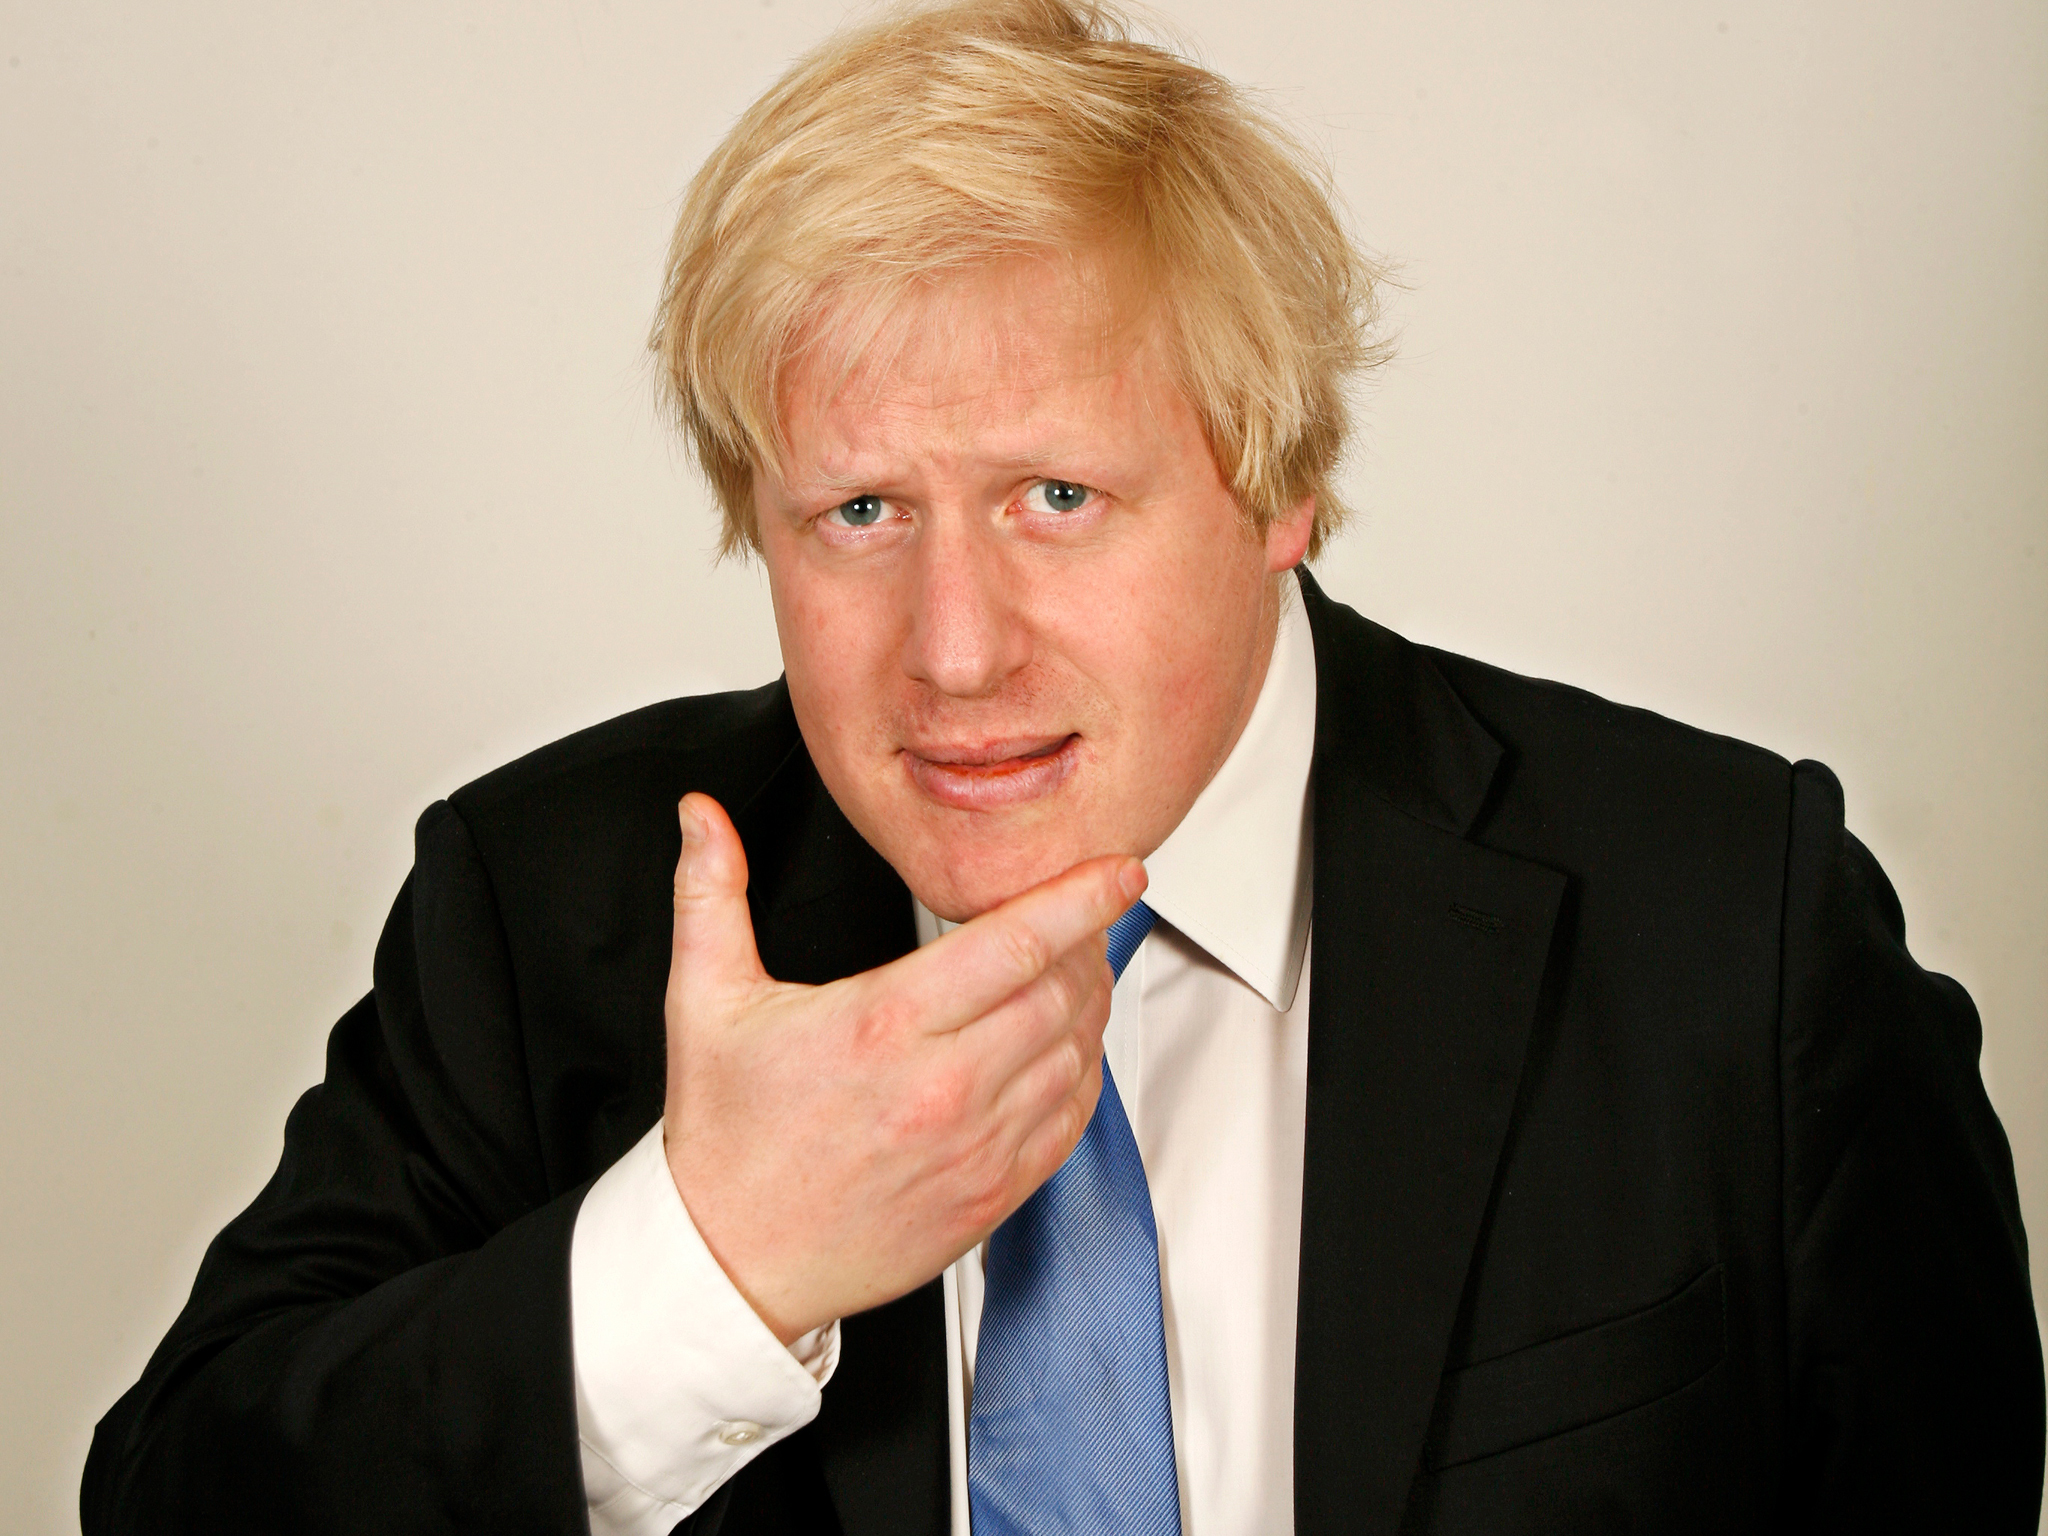 Boris Johnson on buskers, bagpipes and Bob Marley